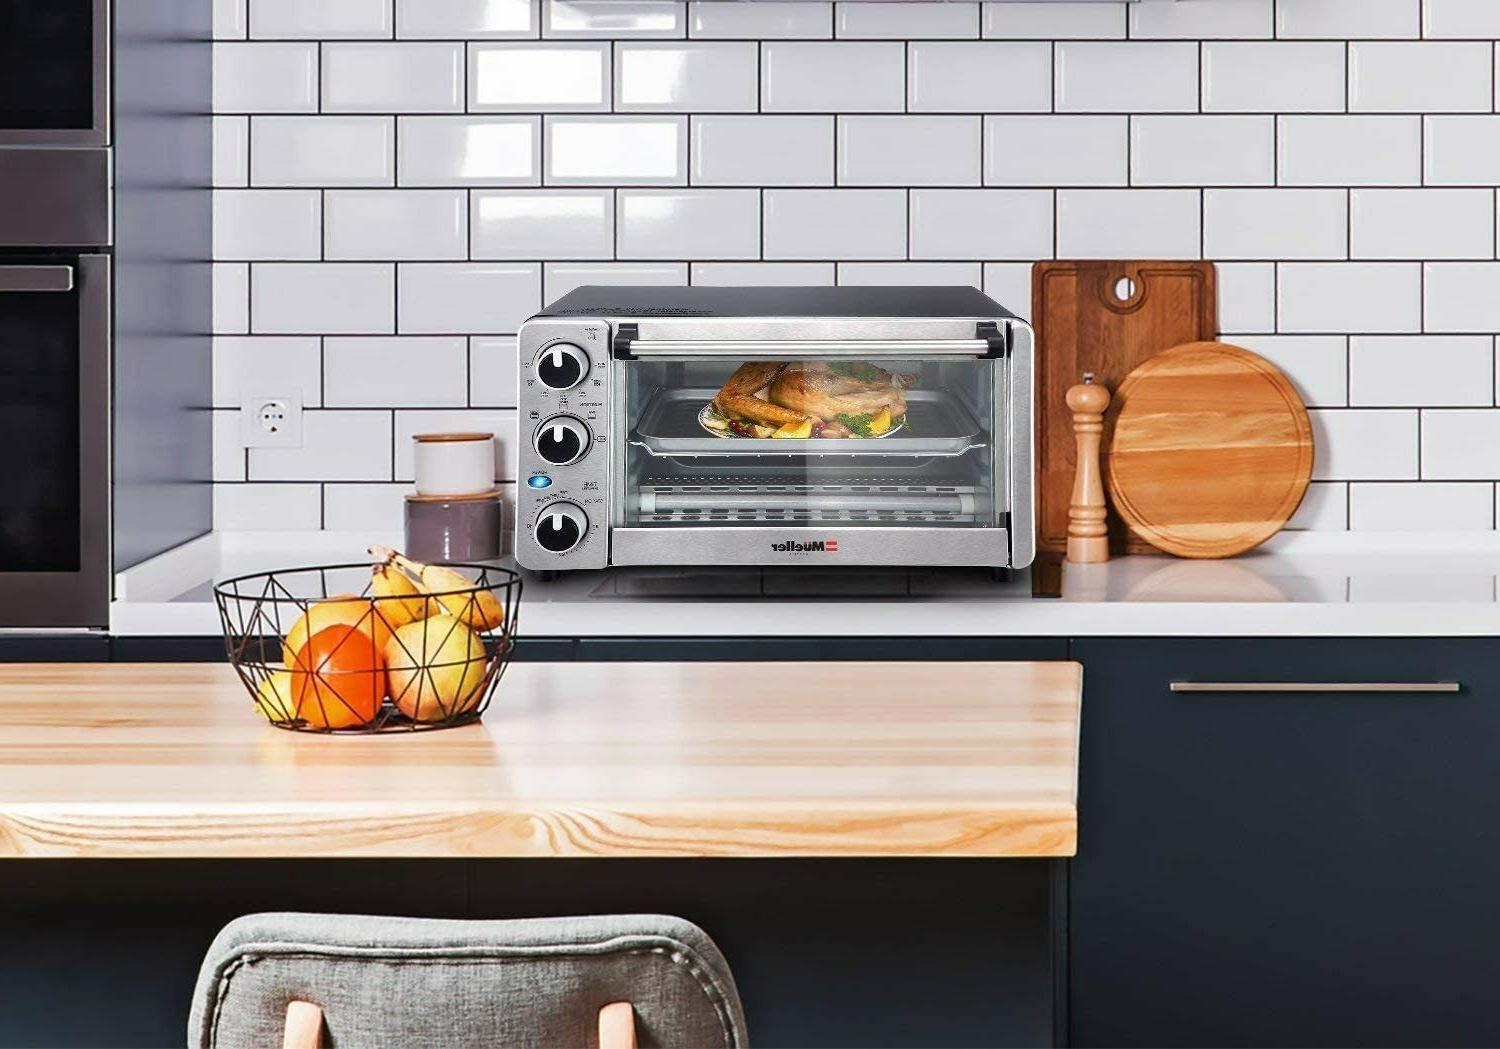 Toaster Oven 4 Slice, Multi-function Stainless Steel with